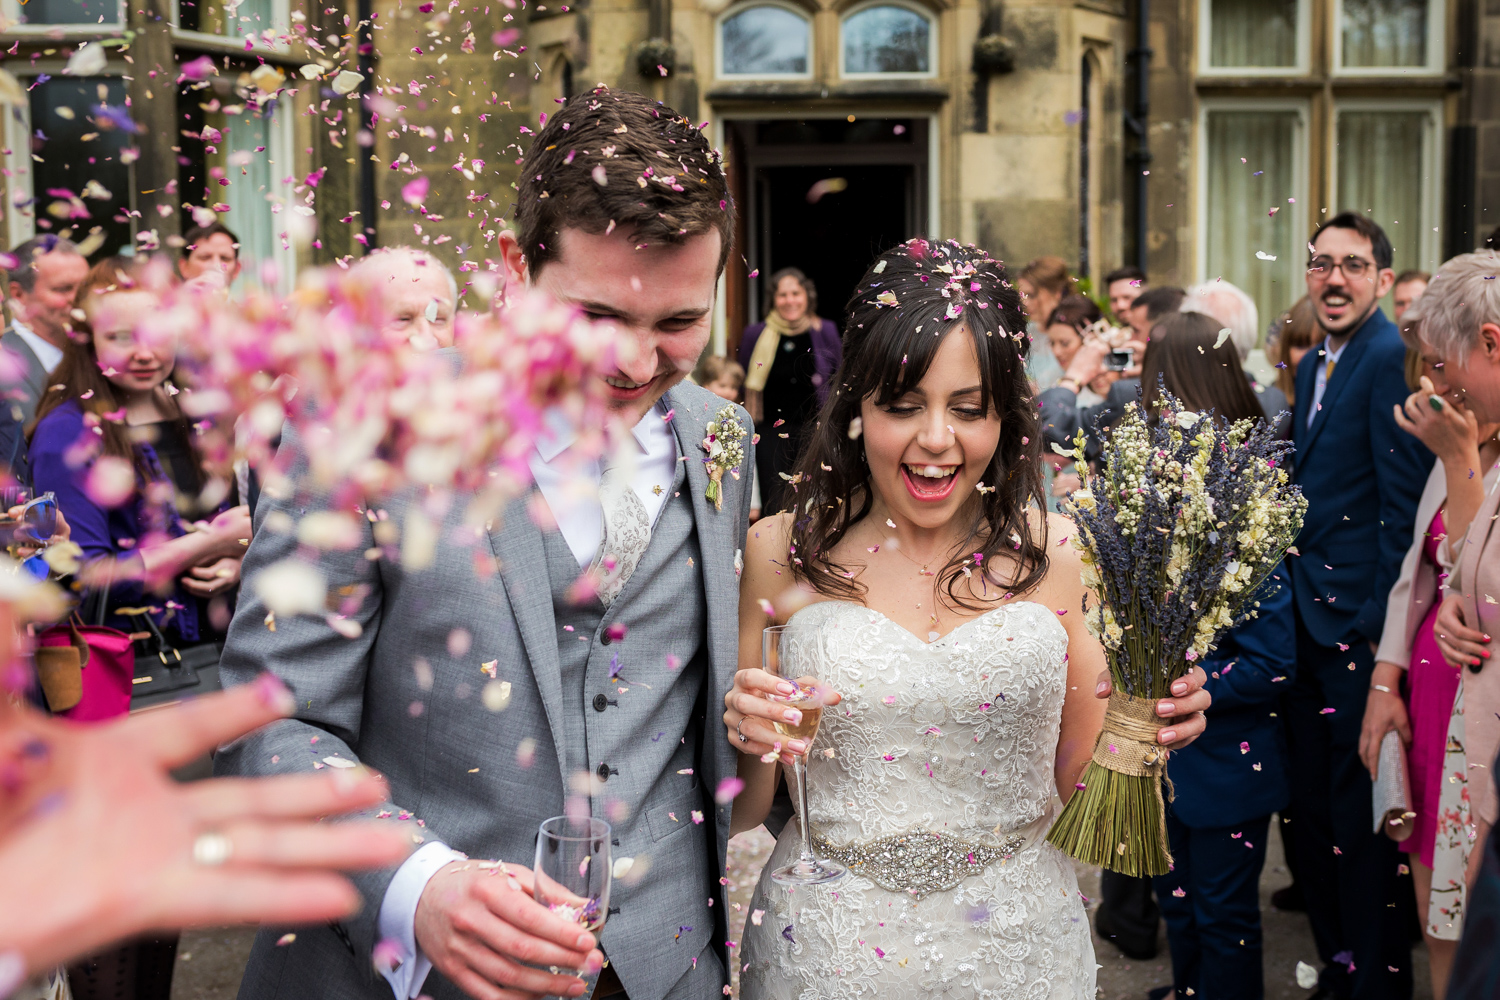 Hargate Hall Wedding in Buxton